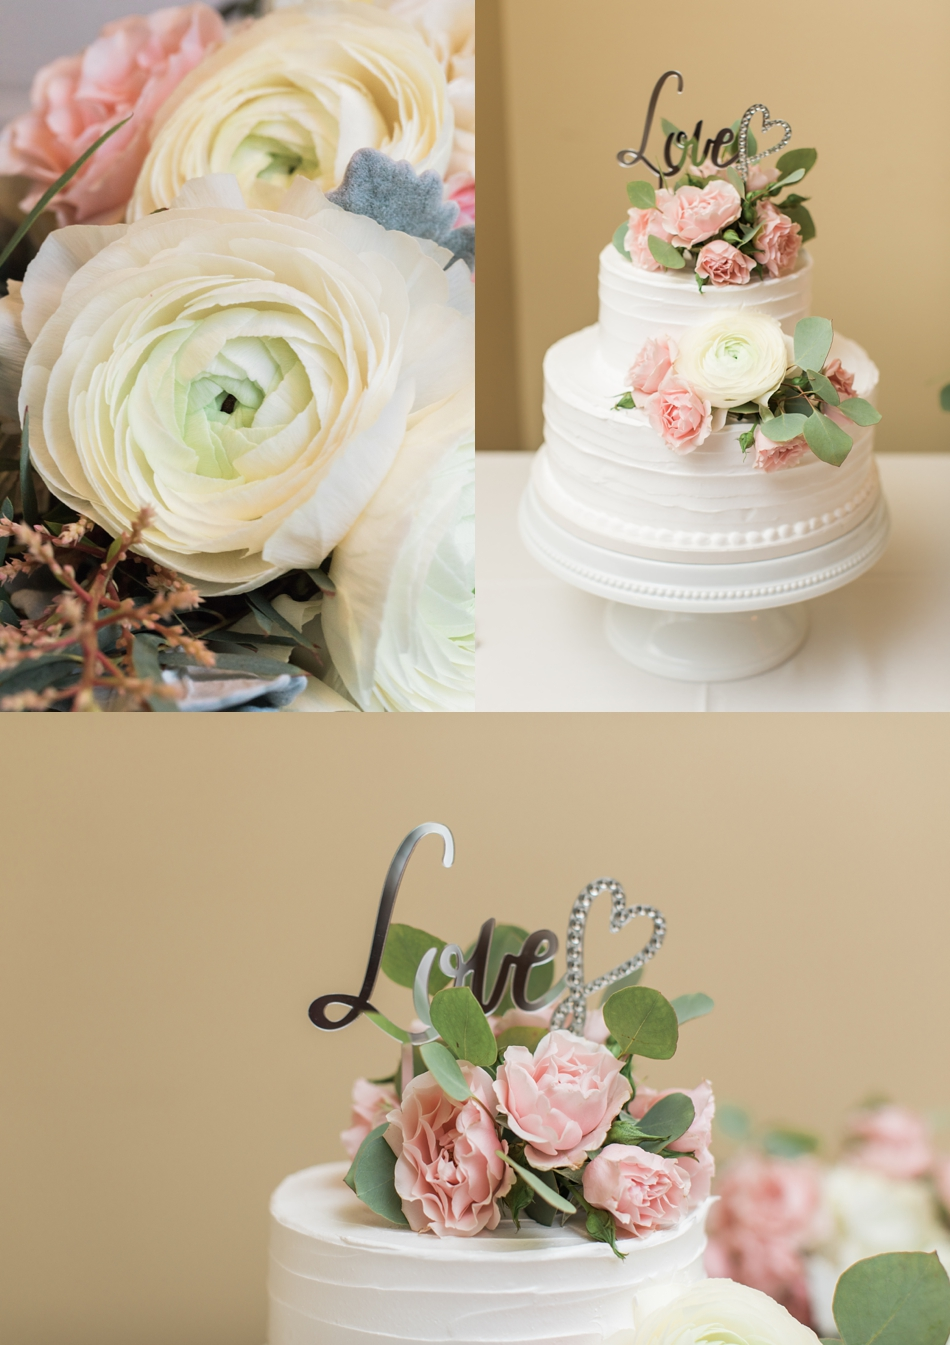 Photo of wedding cake at an intimate wedding at Belle Chapel in Snohomish, a wedding venue near Seattle.   Joanna Monger Photography   Snohomish & Seattle Photographer